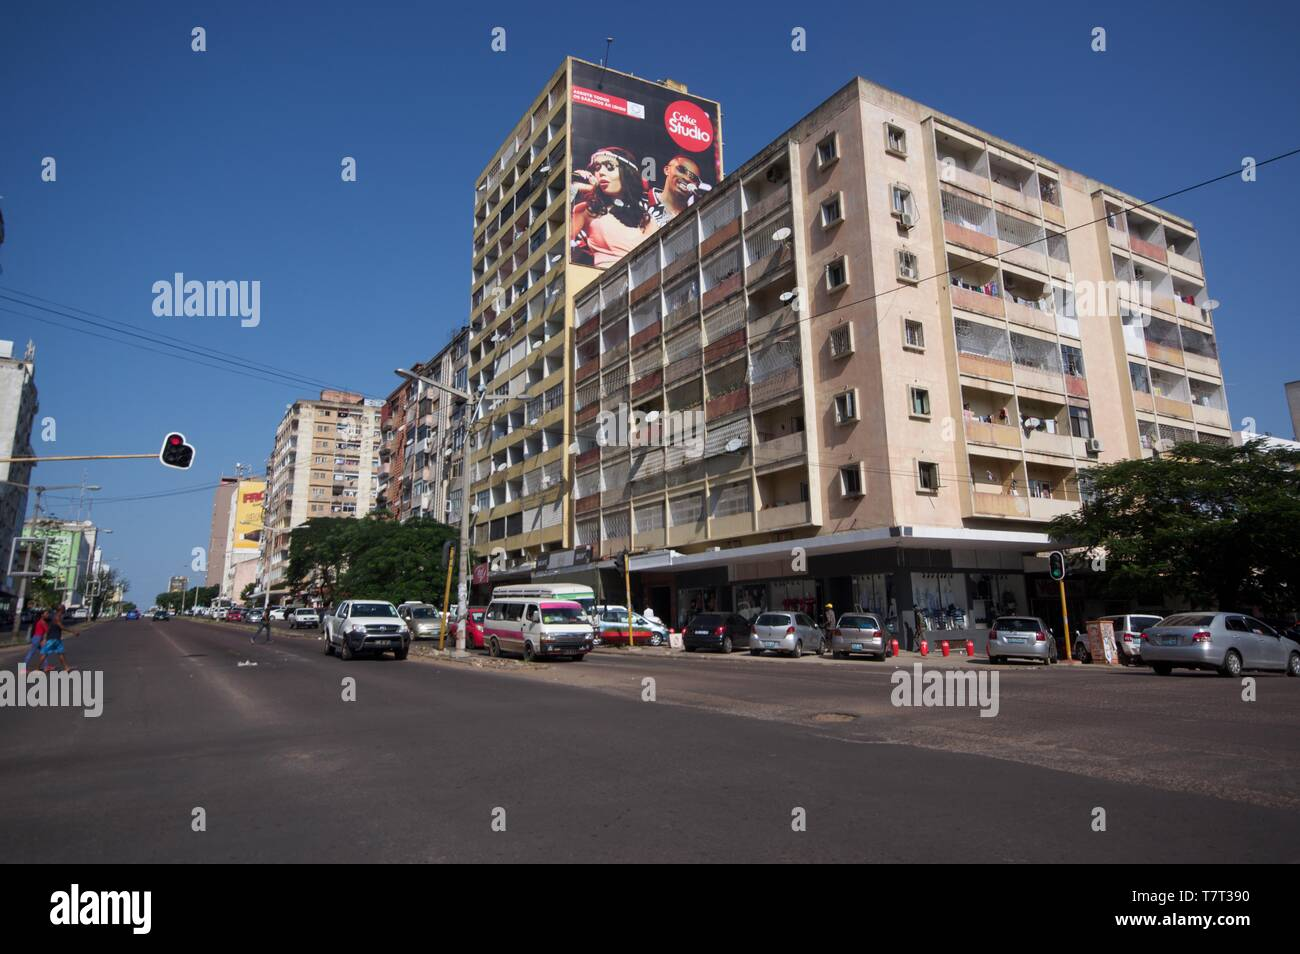 Buildings on Avenida Eduardo Mondlane, Maputo, Mozambique - Stock Image